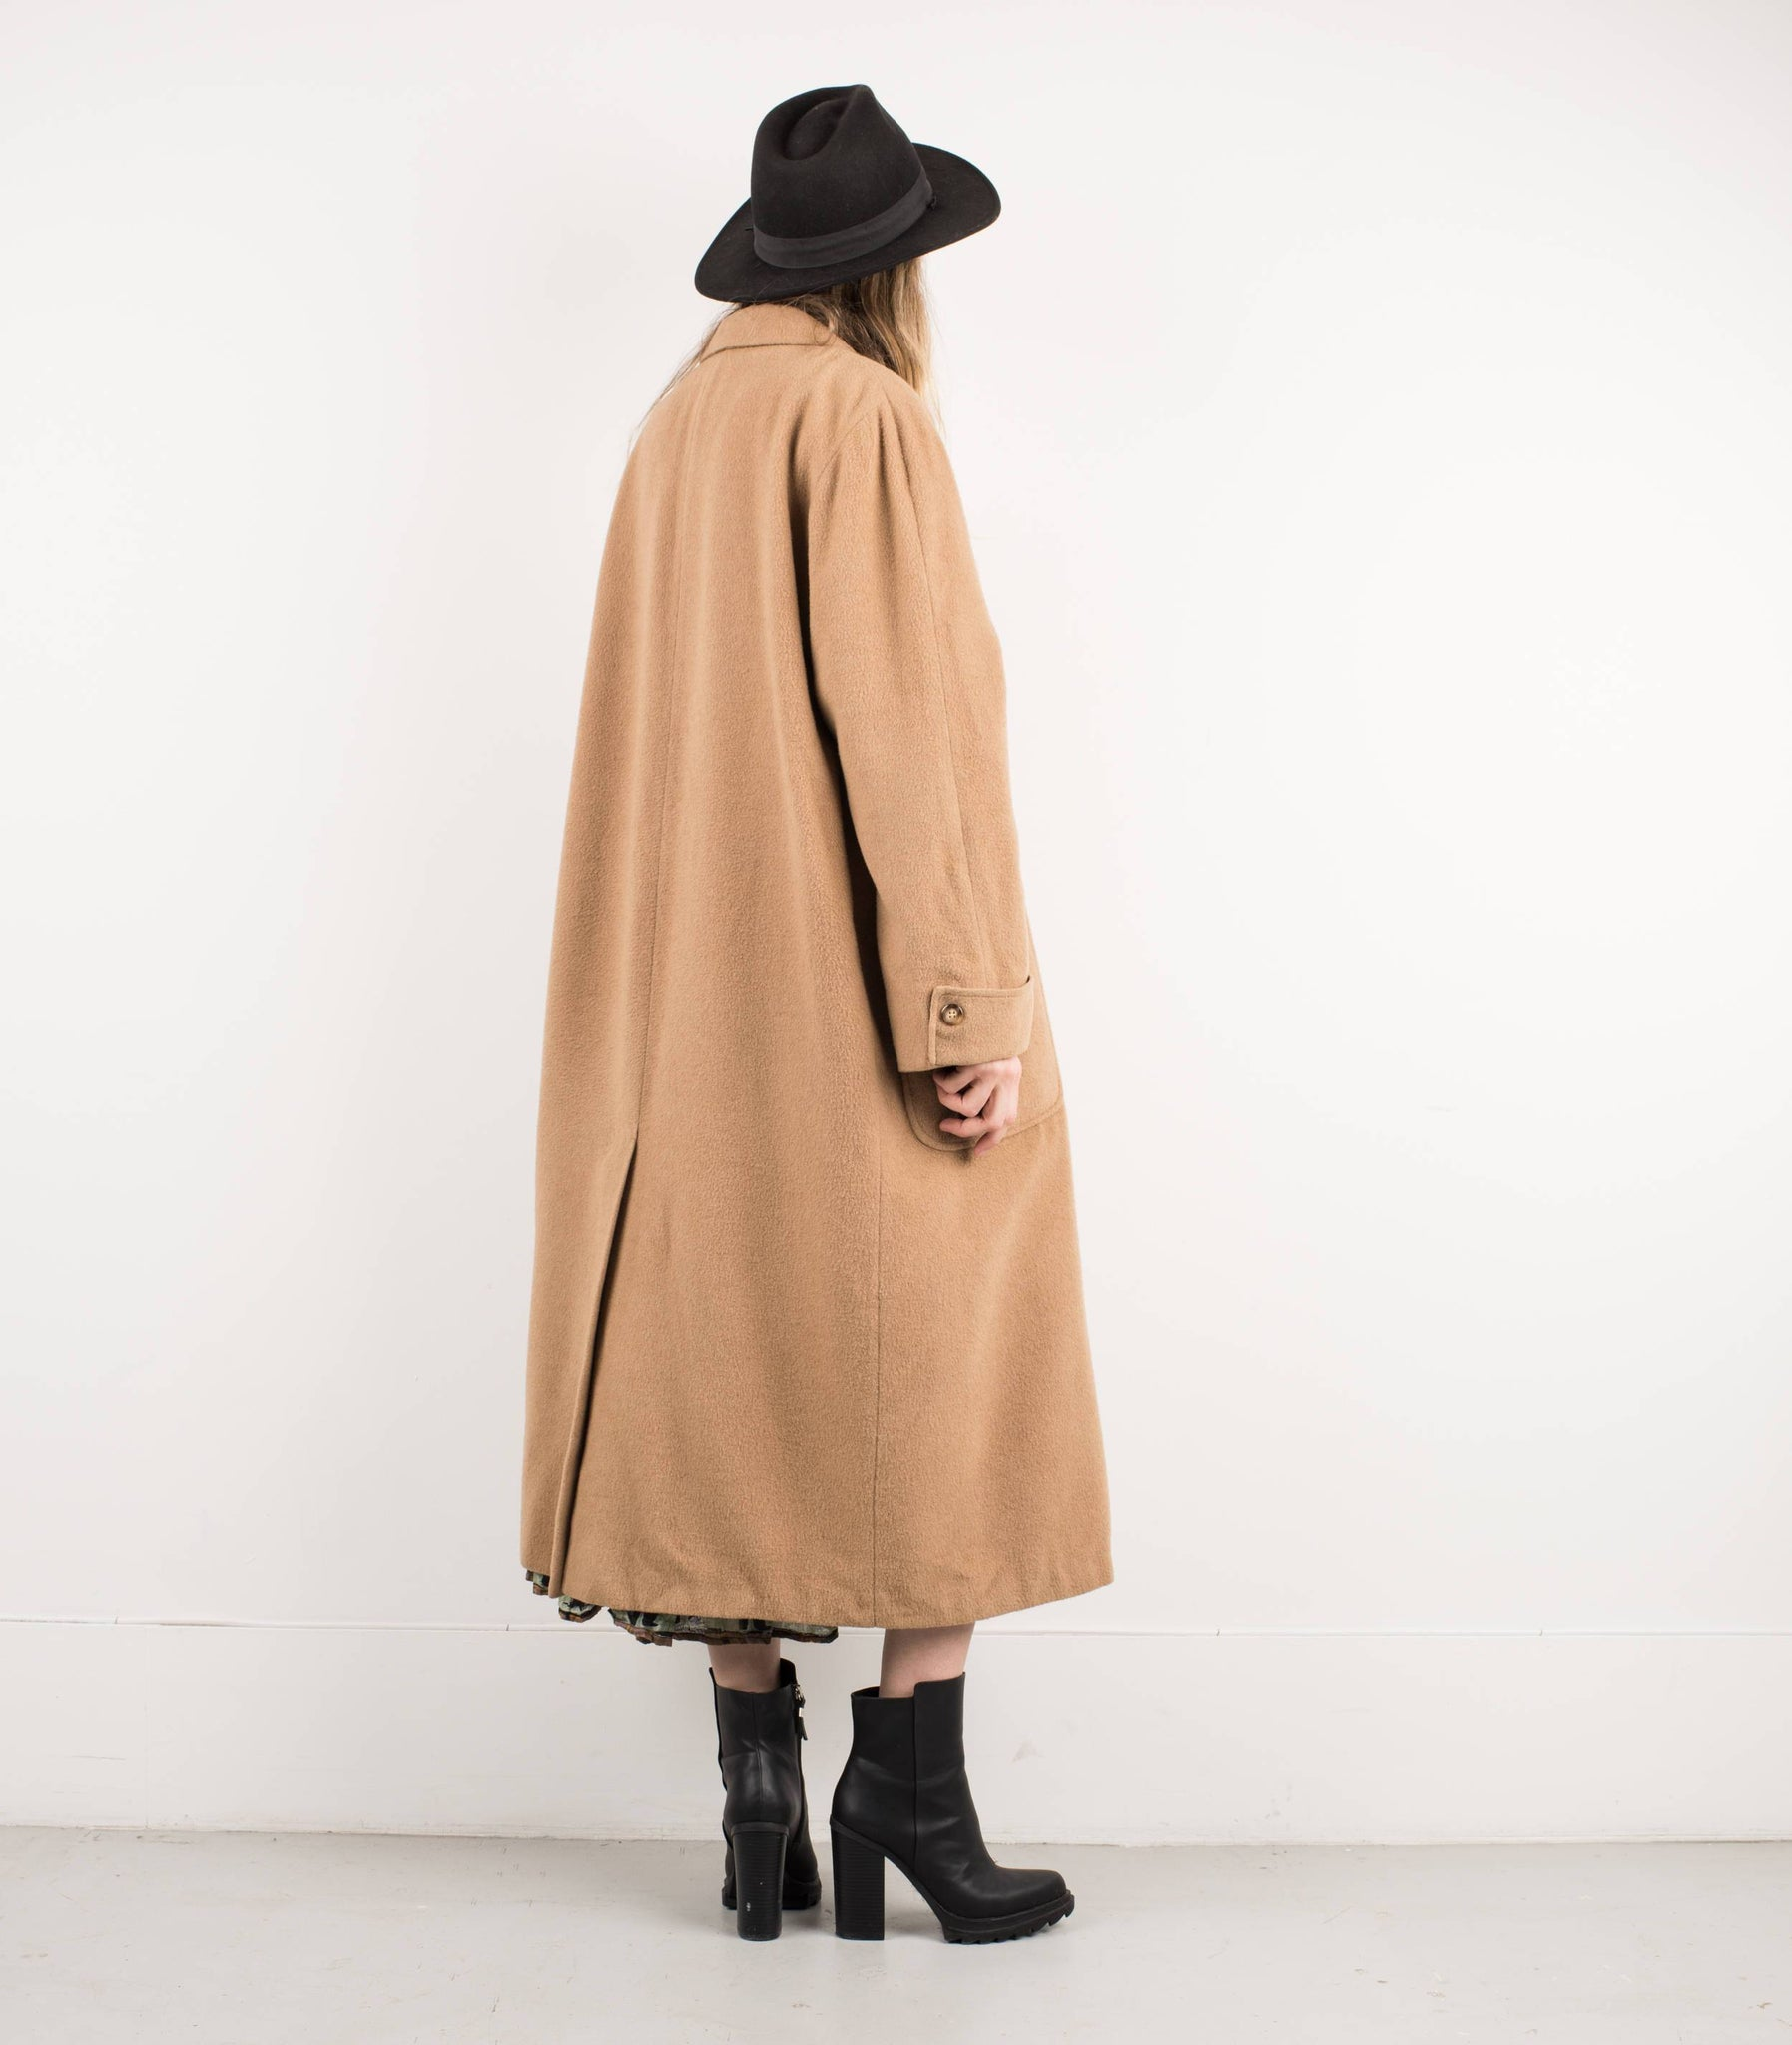 Vintage Camel Oversized Wool Coat / S - Closed Caption